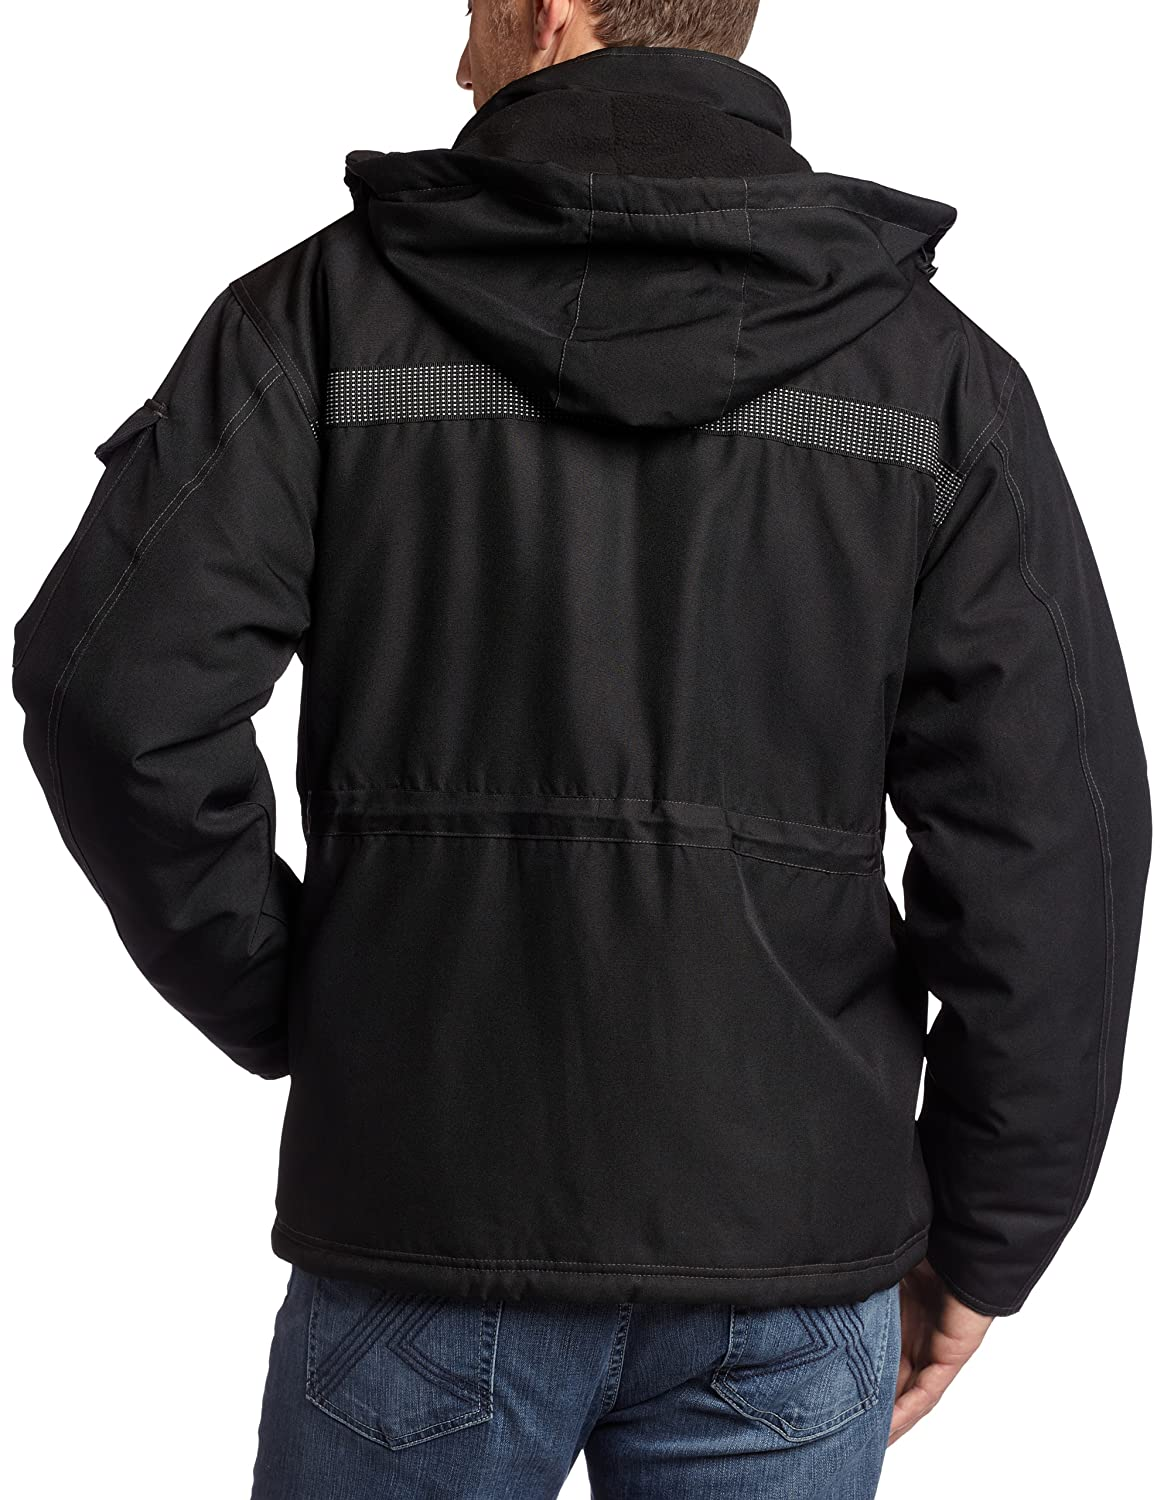 Amazon.com: Caterpillar Men's Heavy Insulated Parka: Outerwear ...